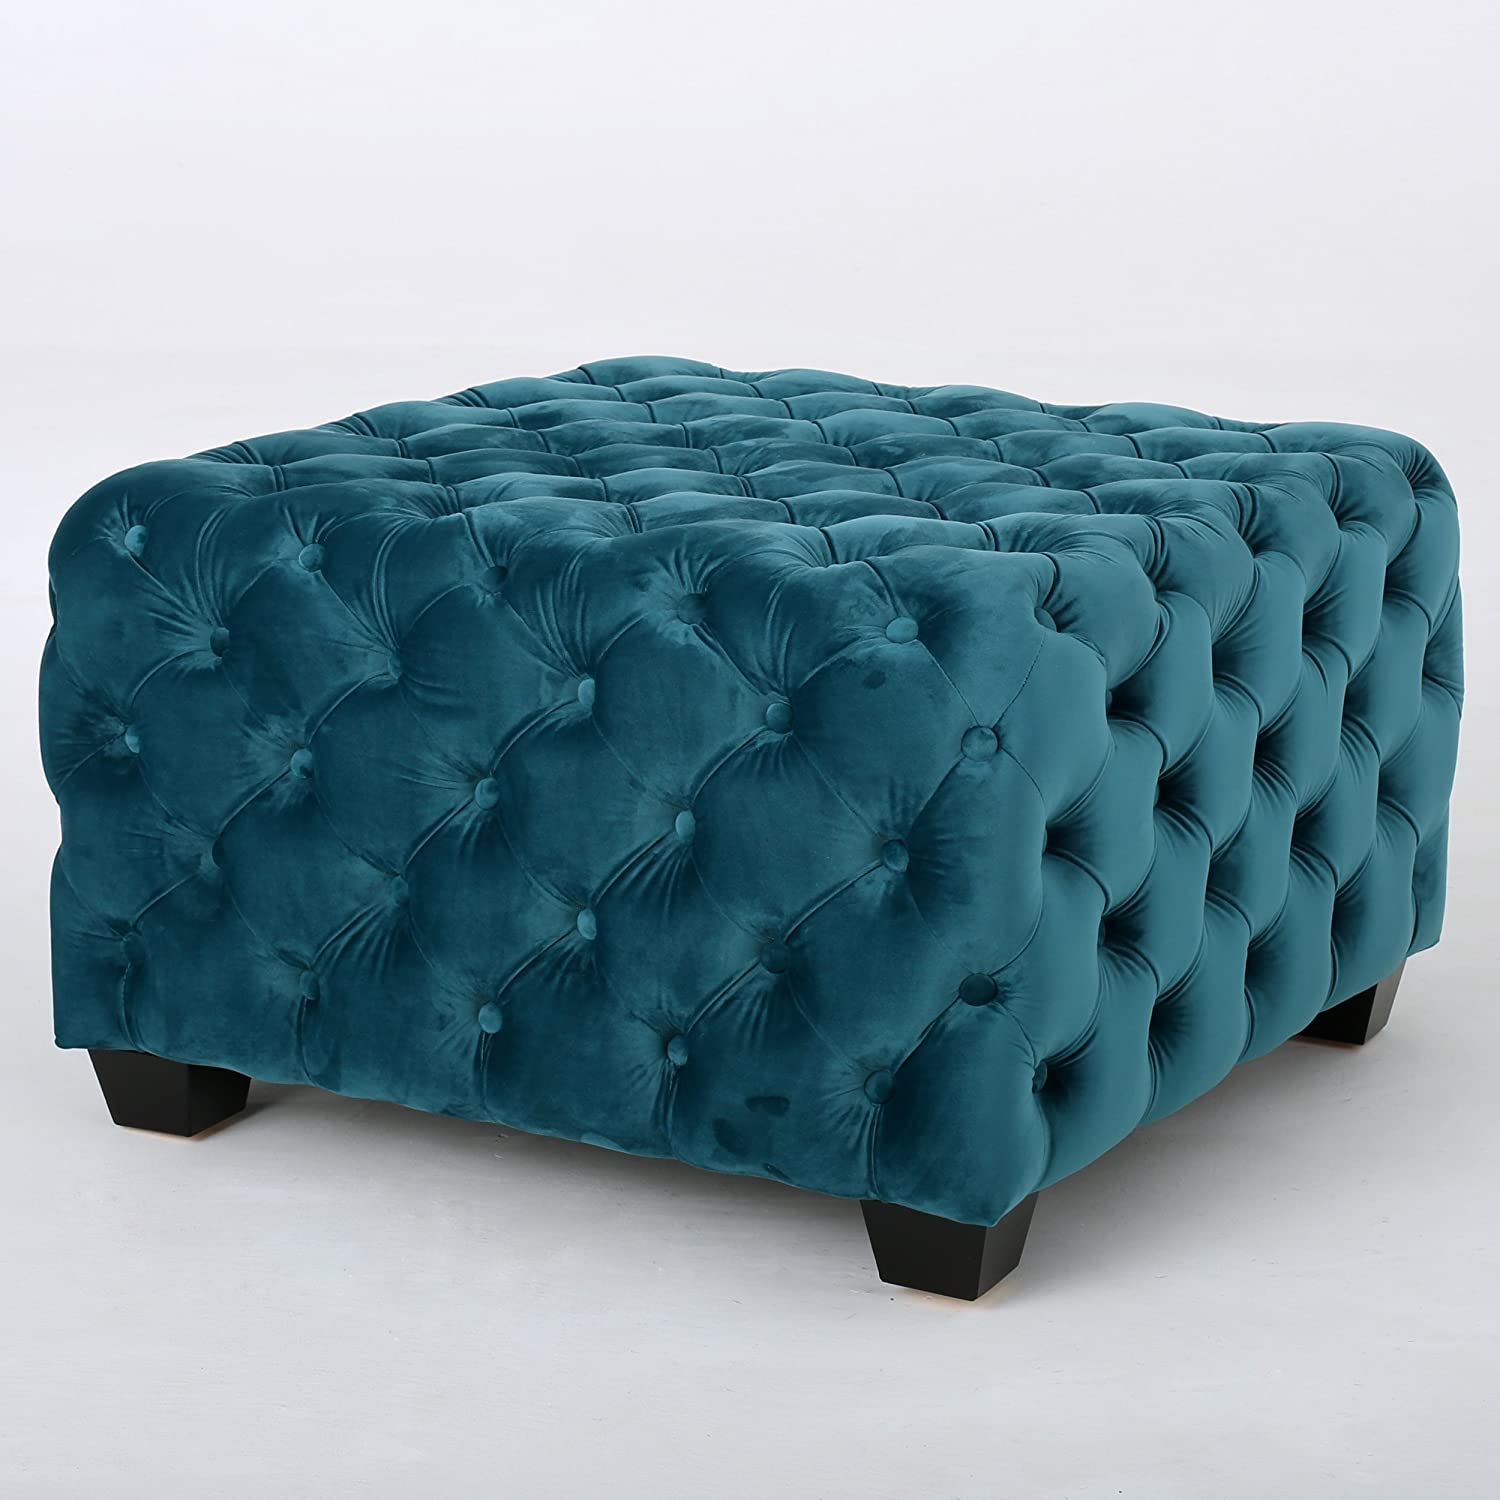 Amazon.com: Provence Dark Teal Tufted Velvet Fabric Square Ottoman ...